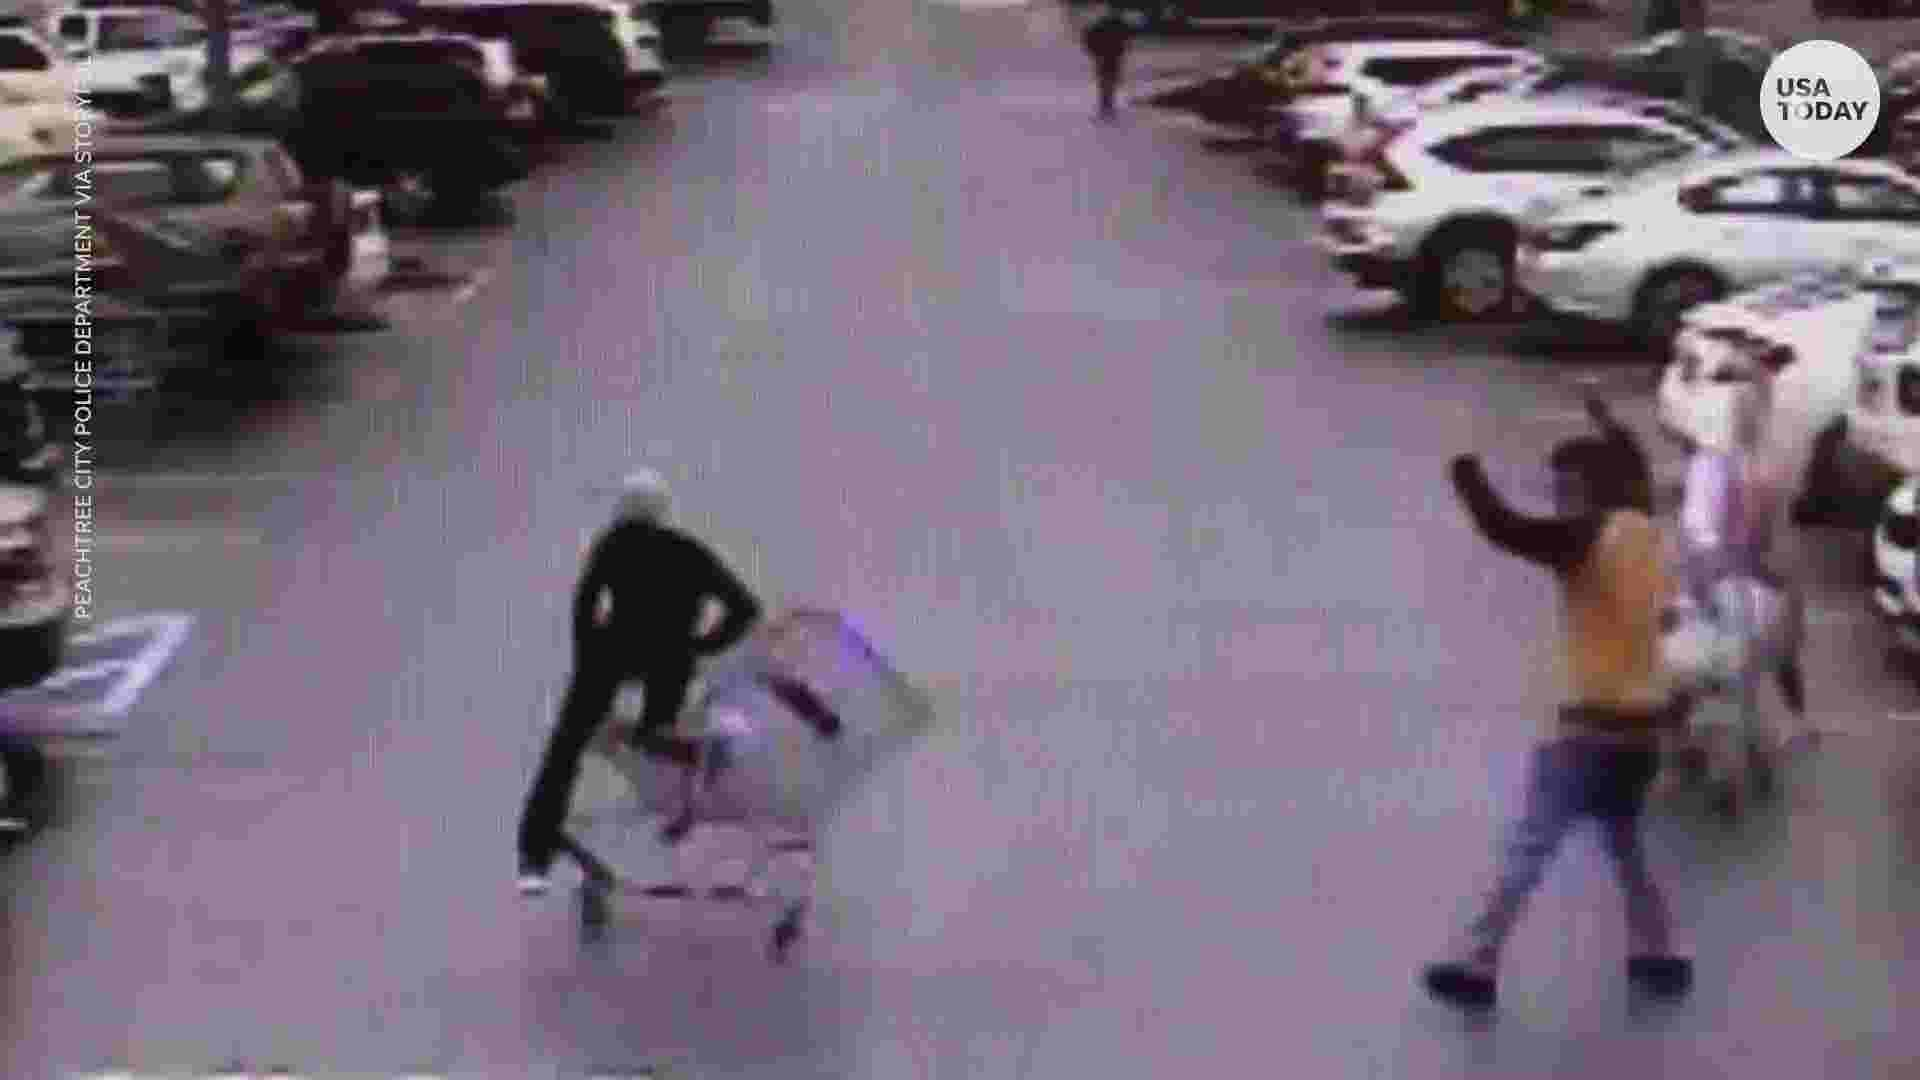 Shopper helps police take down suspect with shopping cart in Walmart parking lot